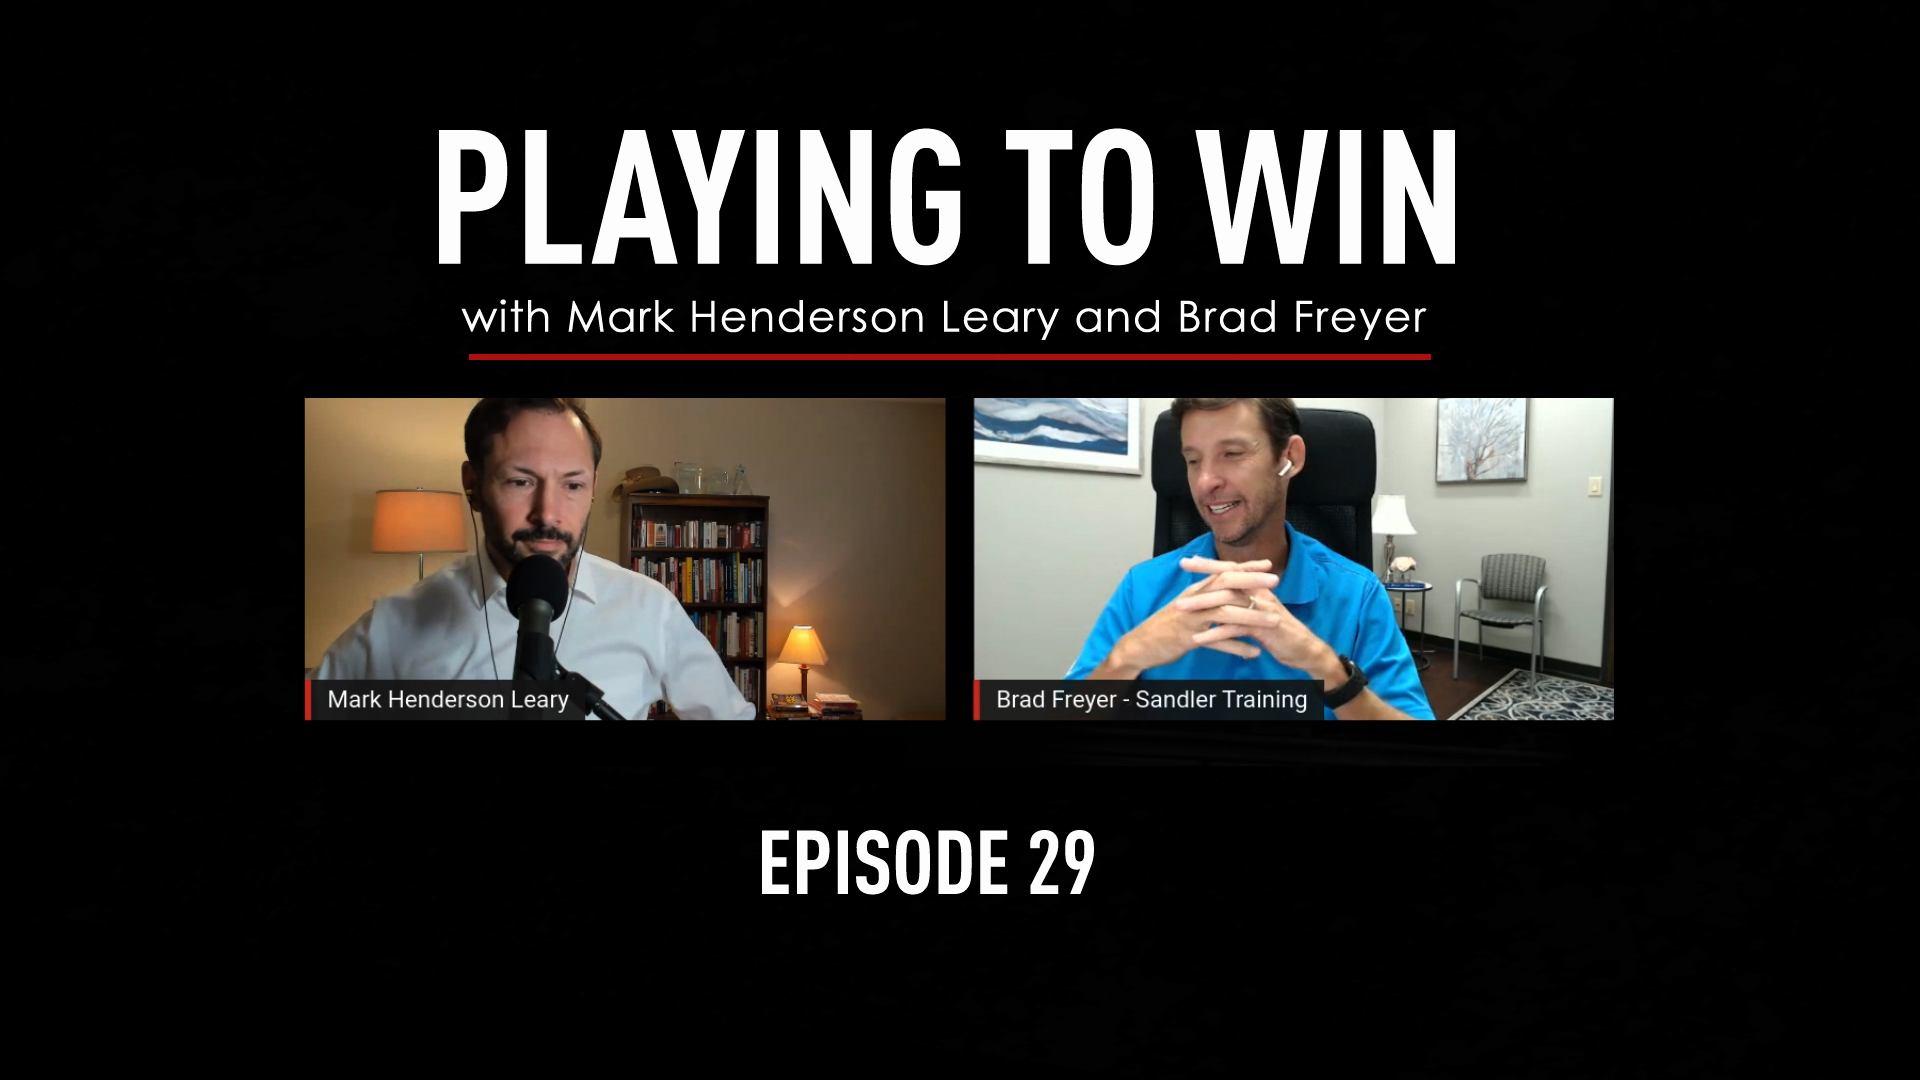 Playing to Win Ep 29